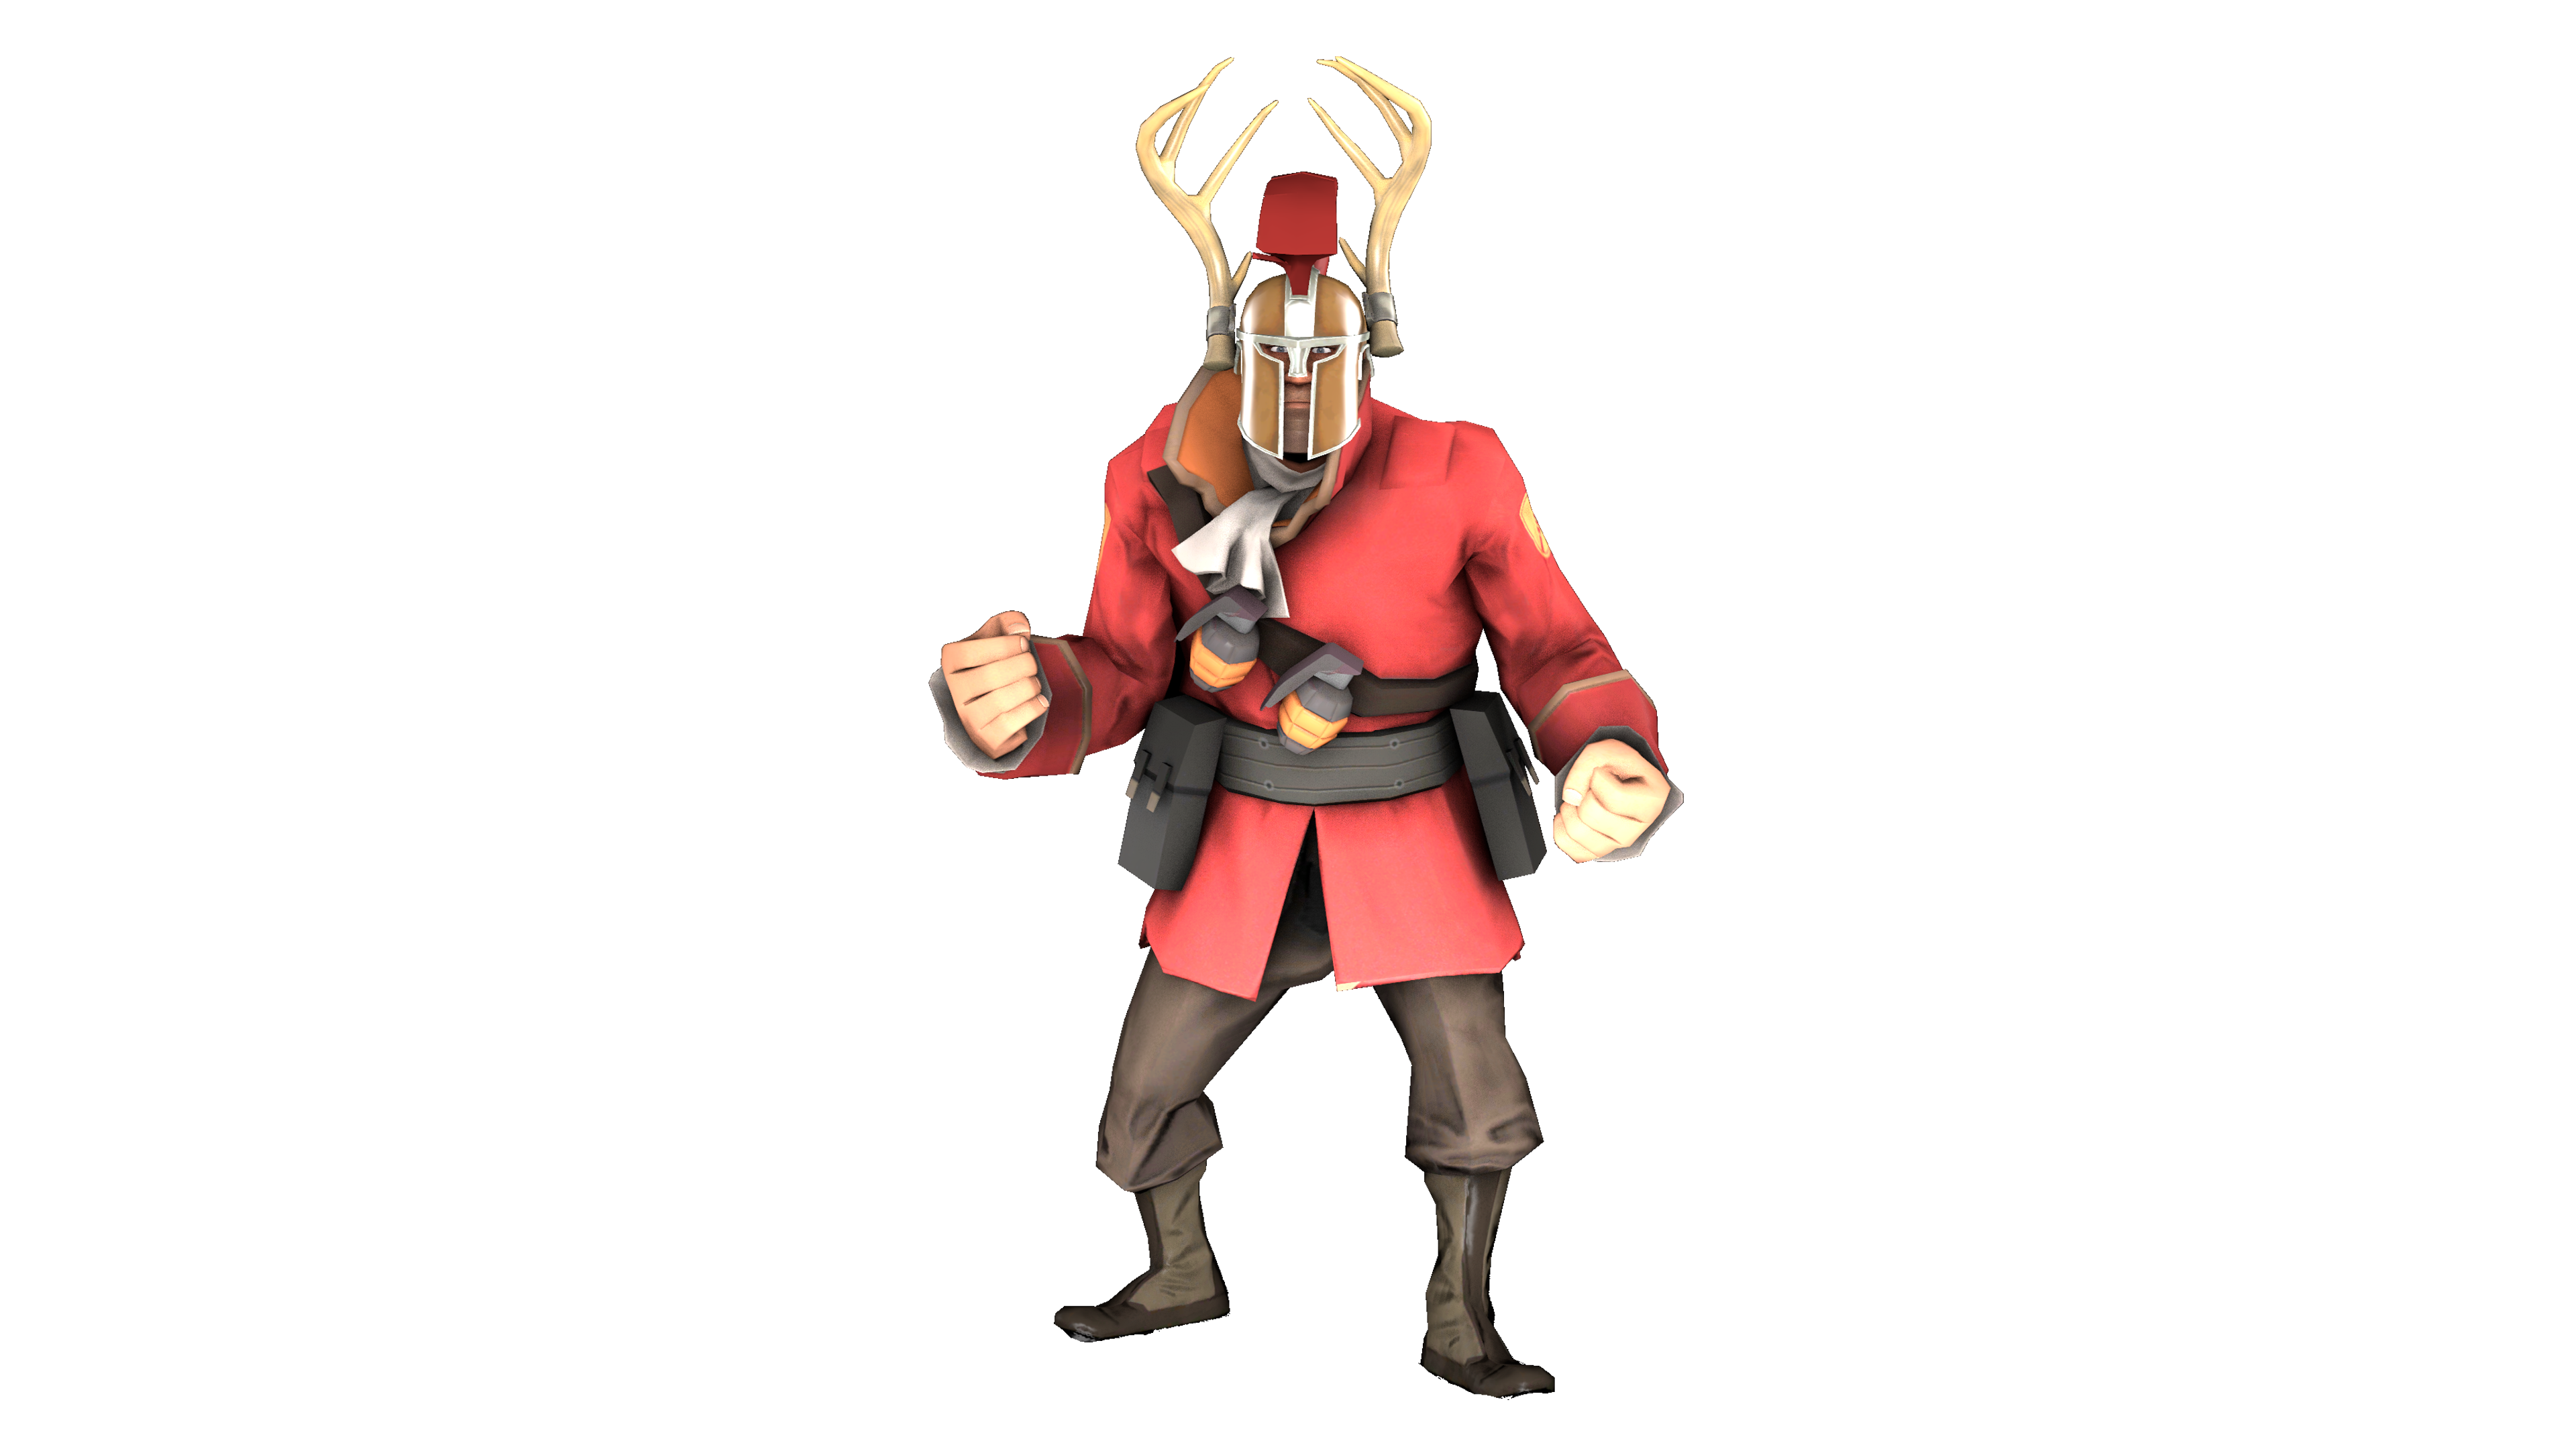 Tf2 transparent loadout. Steam community guide cool